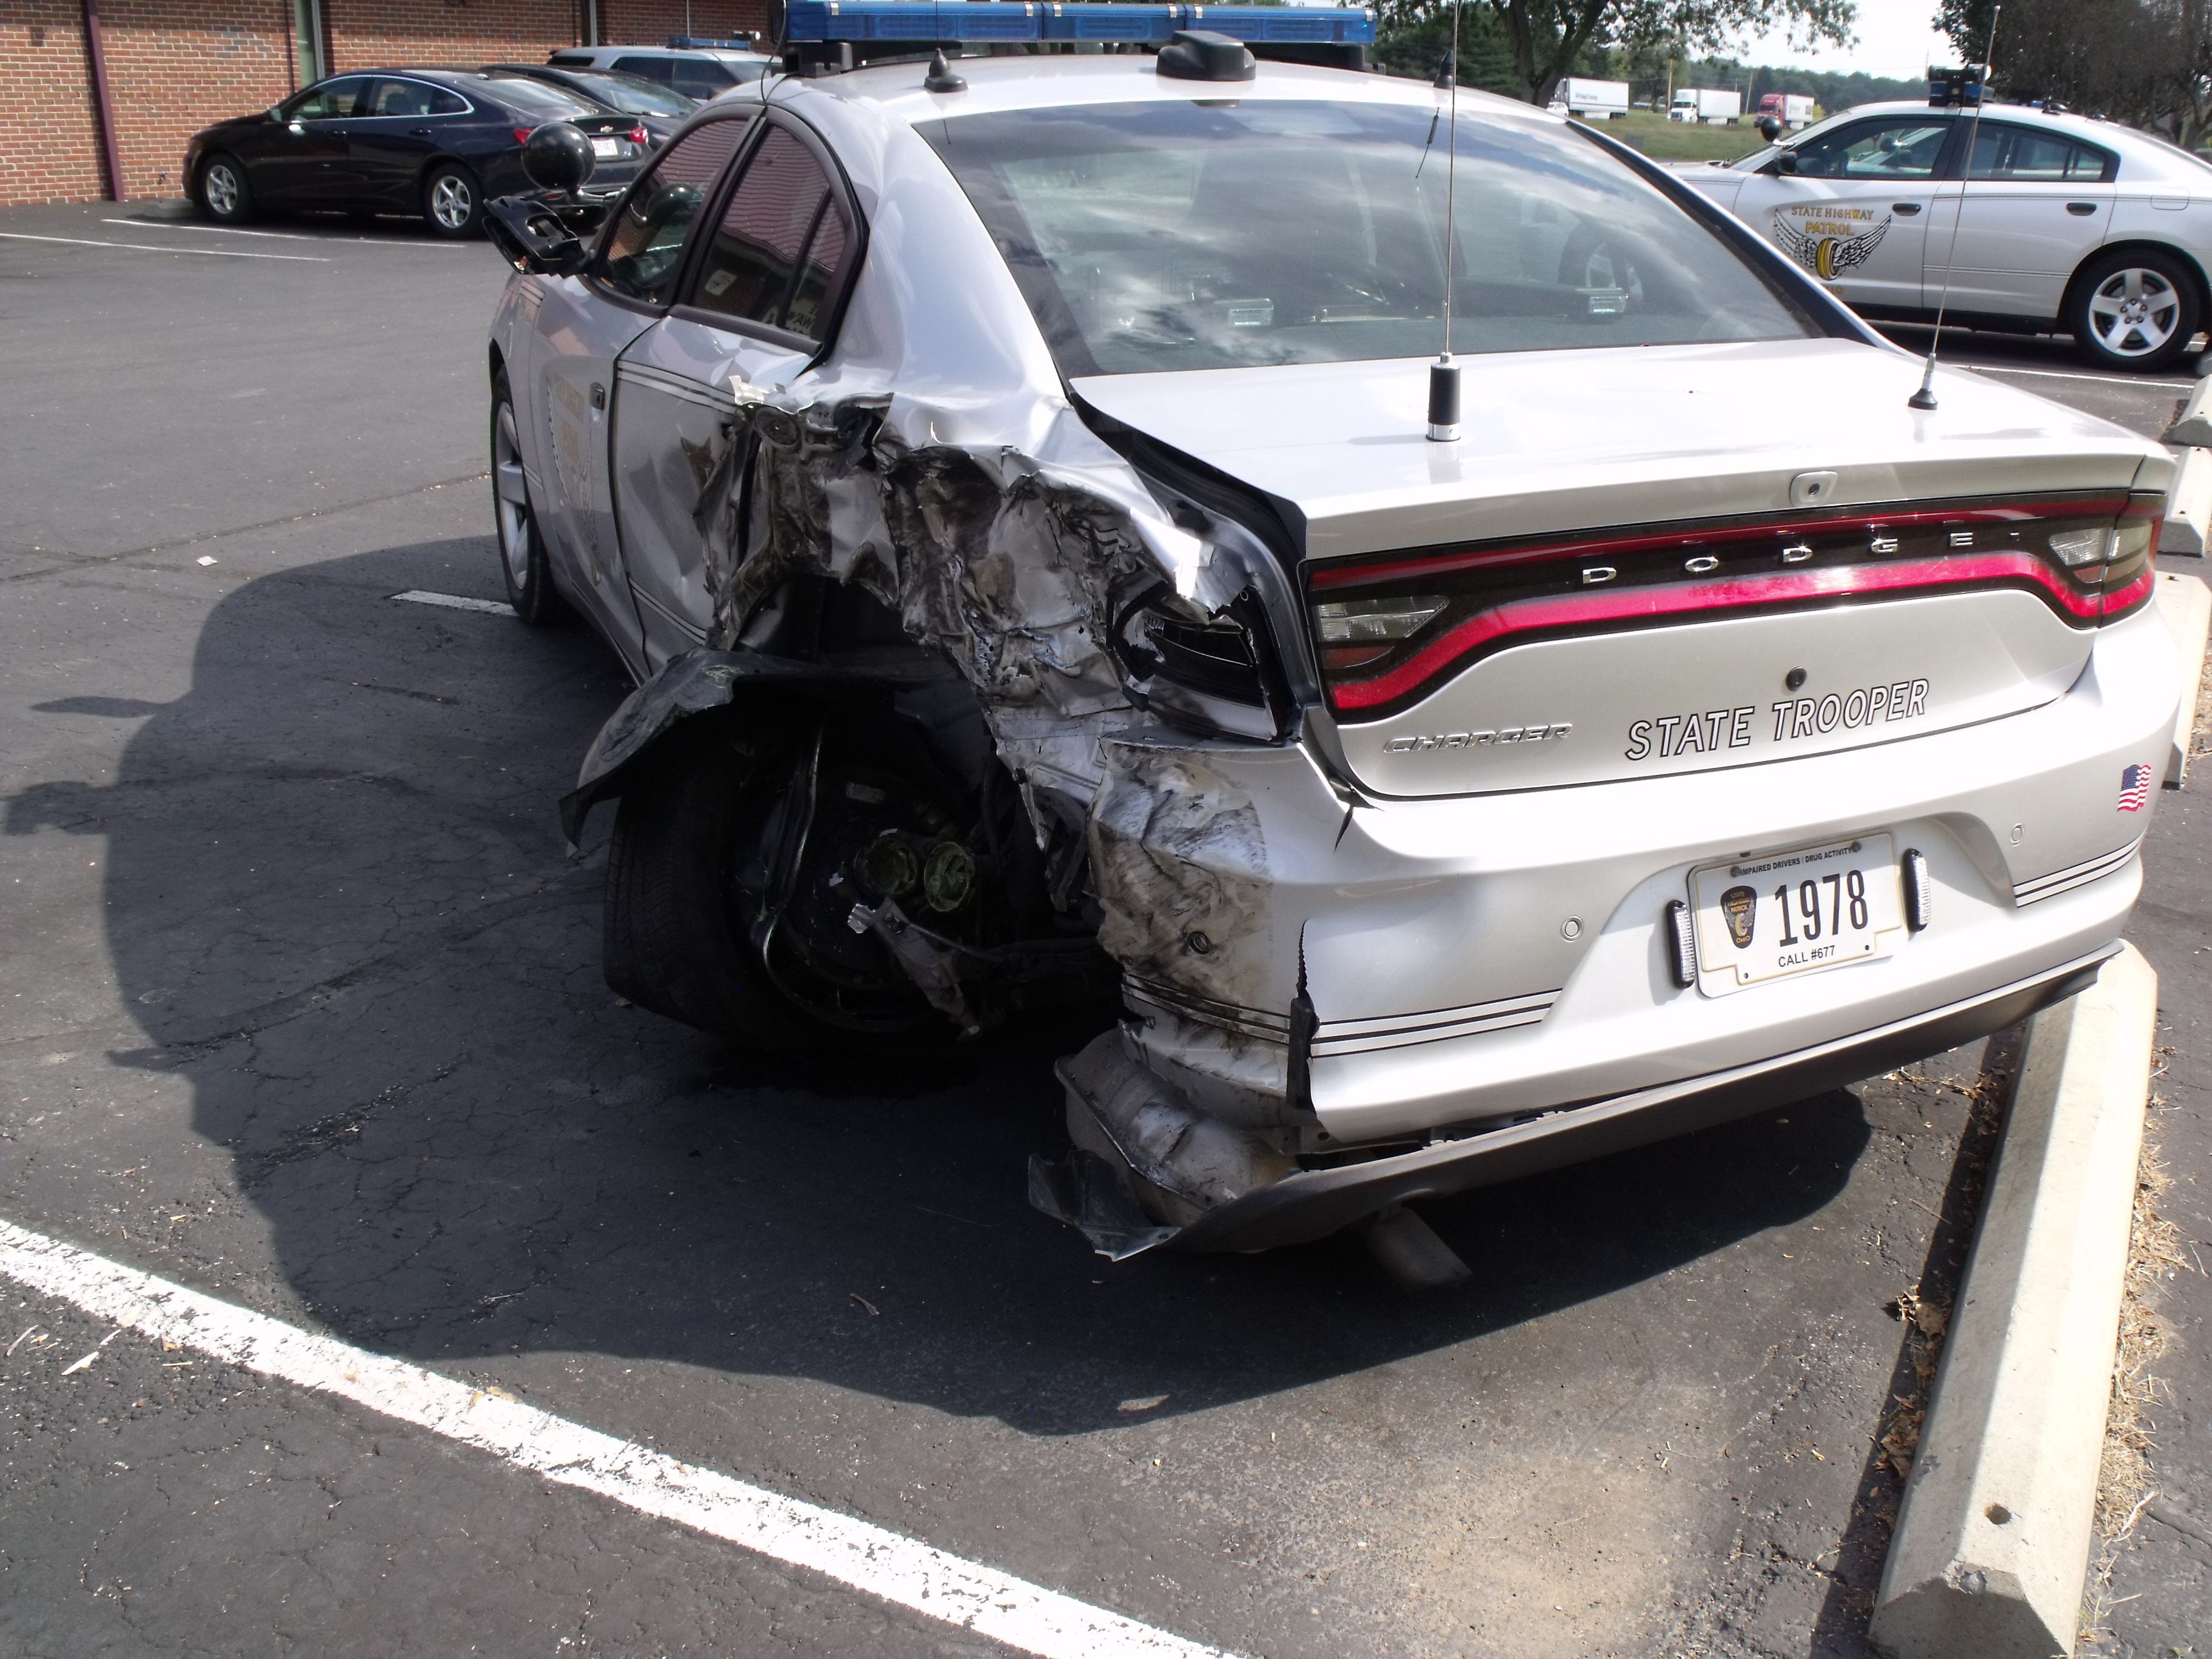 State Trooper Struck on 23 This Morning While Stopped at a